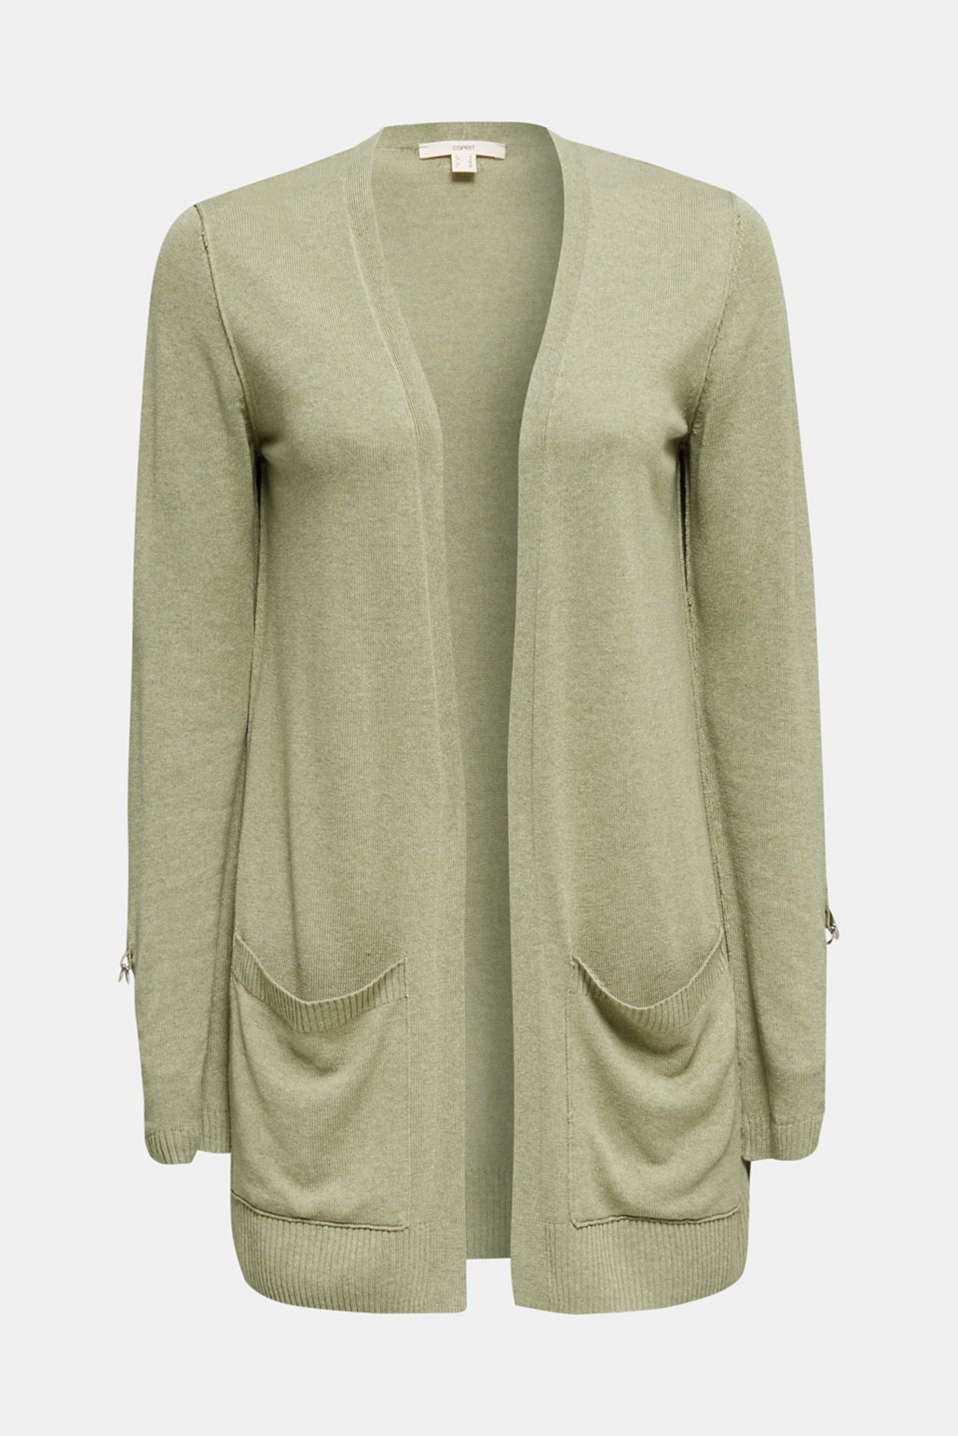 With linen: open-fronted cardigan with pockets, KHAKI GREEN 5, detail image number 6